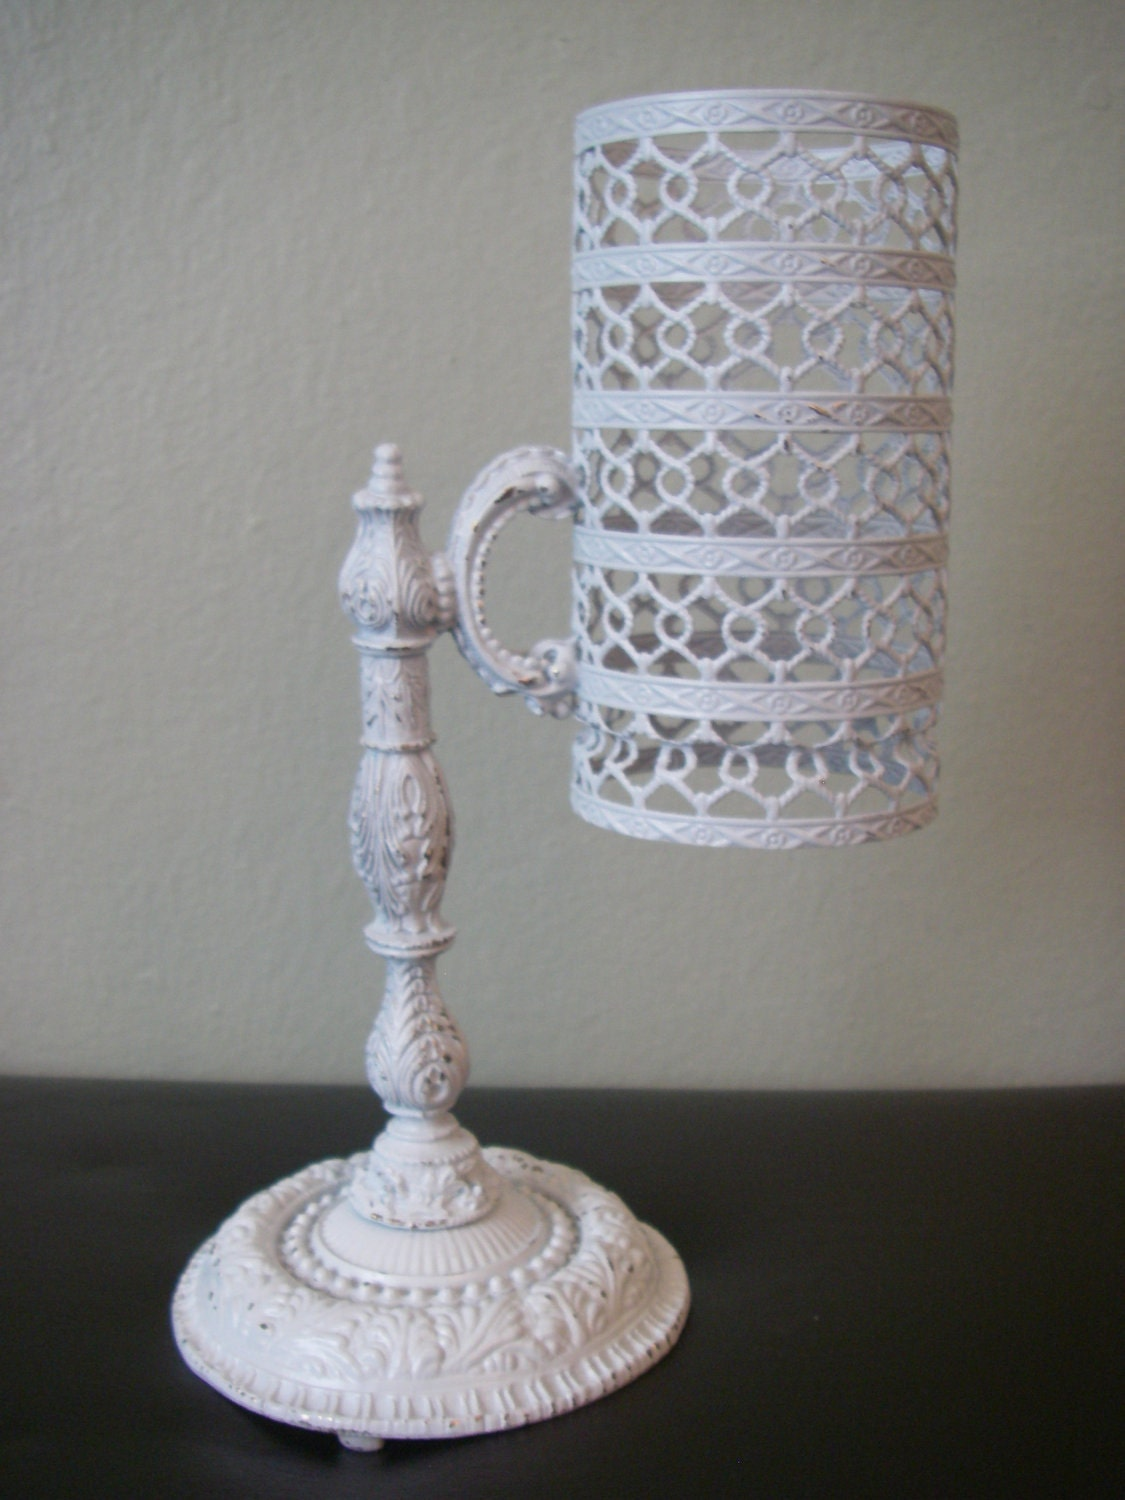 Vintage Filigree Dixie Cup Holder Dispenser By